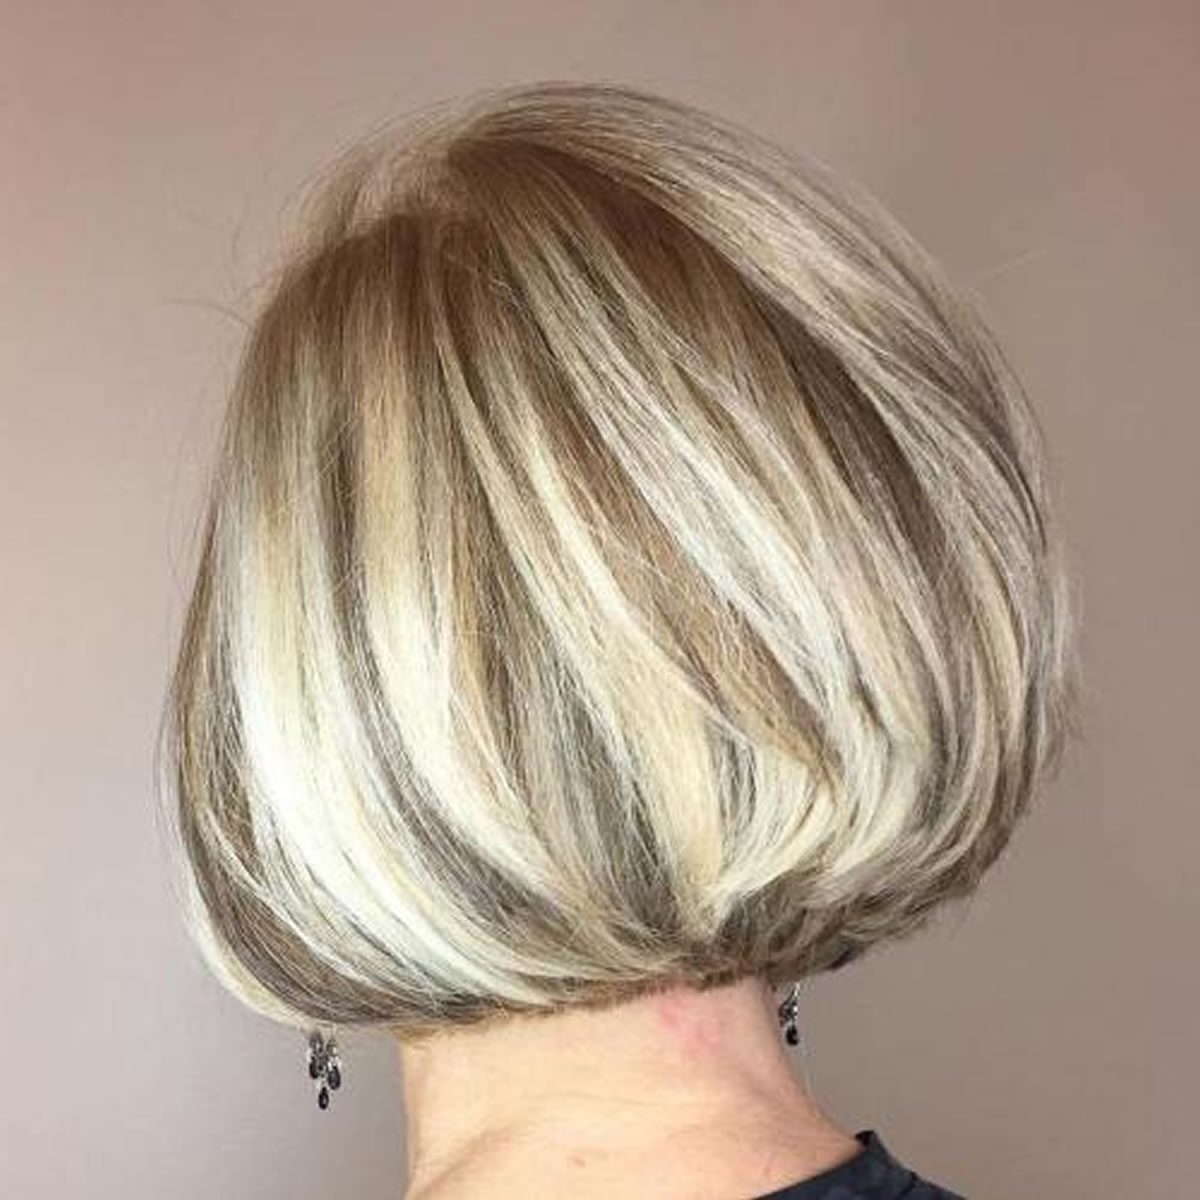 2018 Haircuts For Older Women Over 50 – New Trend Hair Ideas | Haircuts With Regard To Chic Blonde Pixie Bob Hairstyles For Women Over  (View 6 of 20)